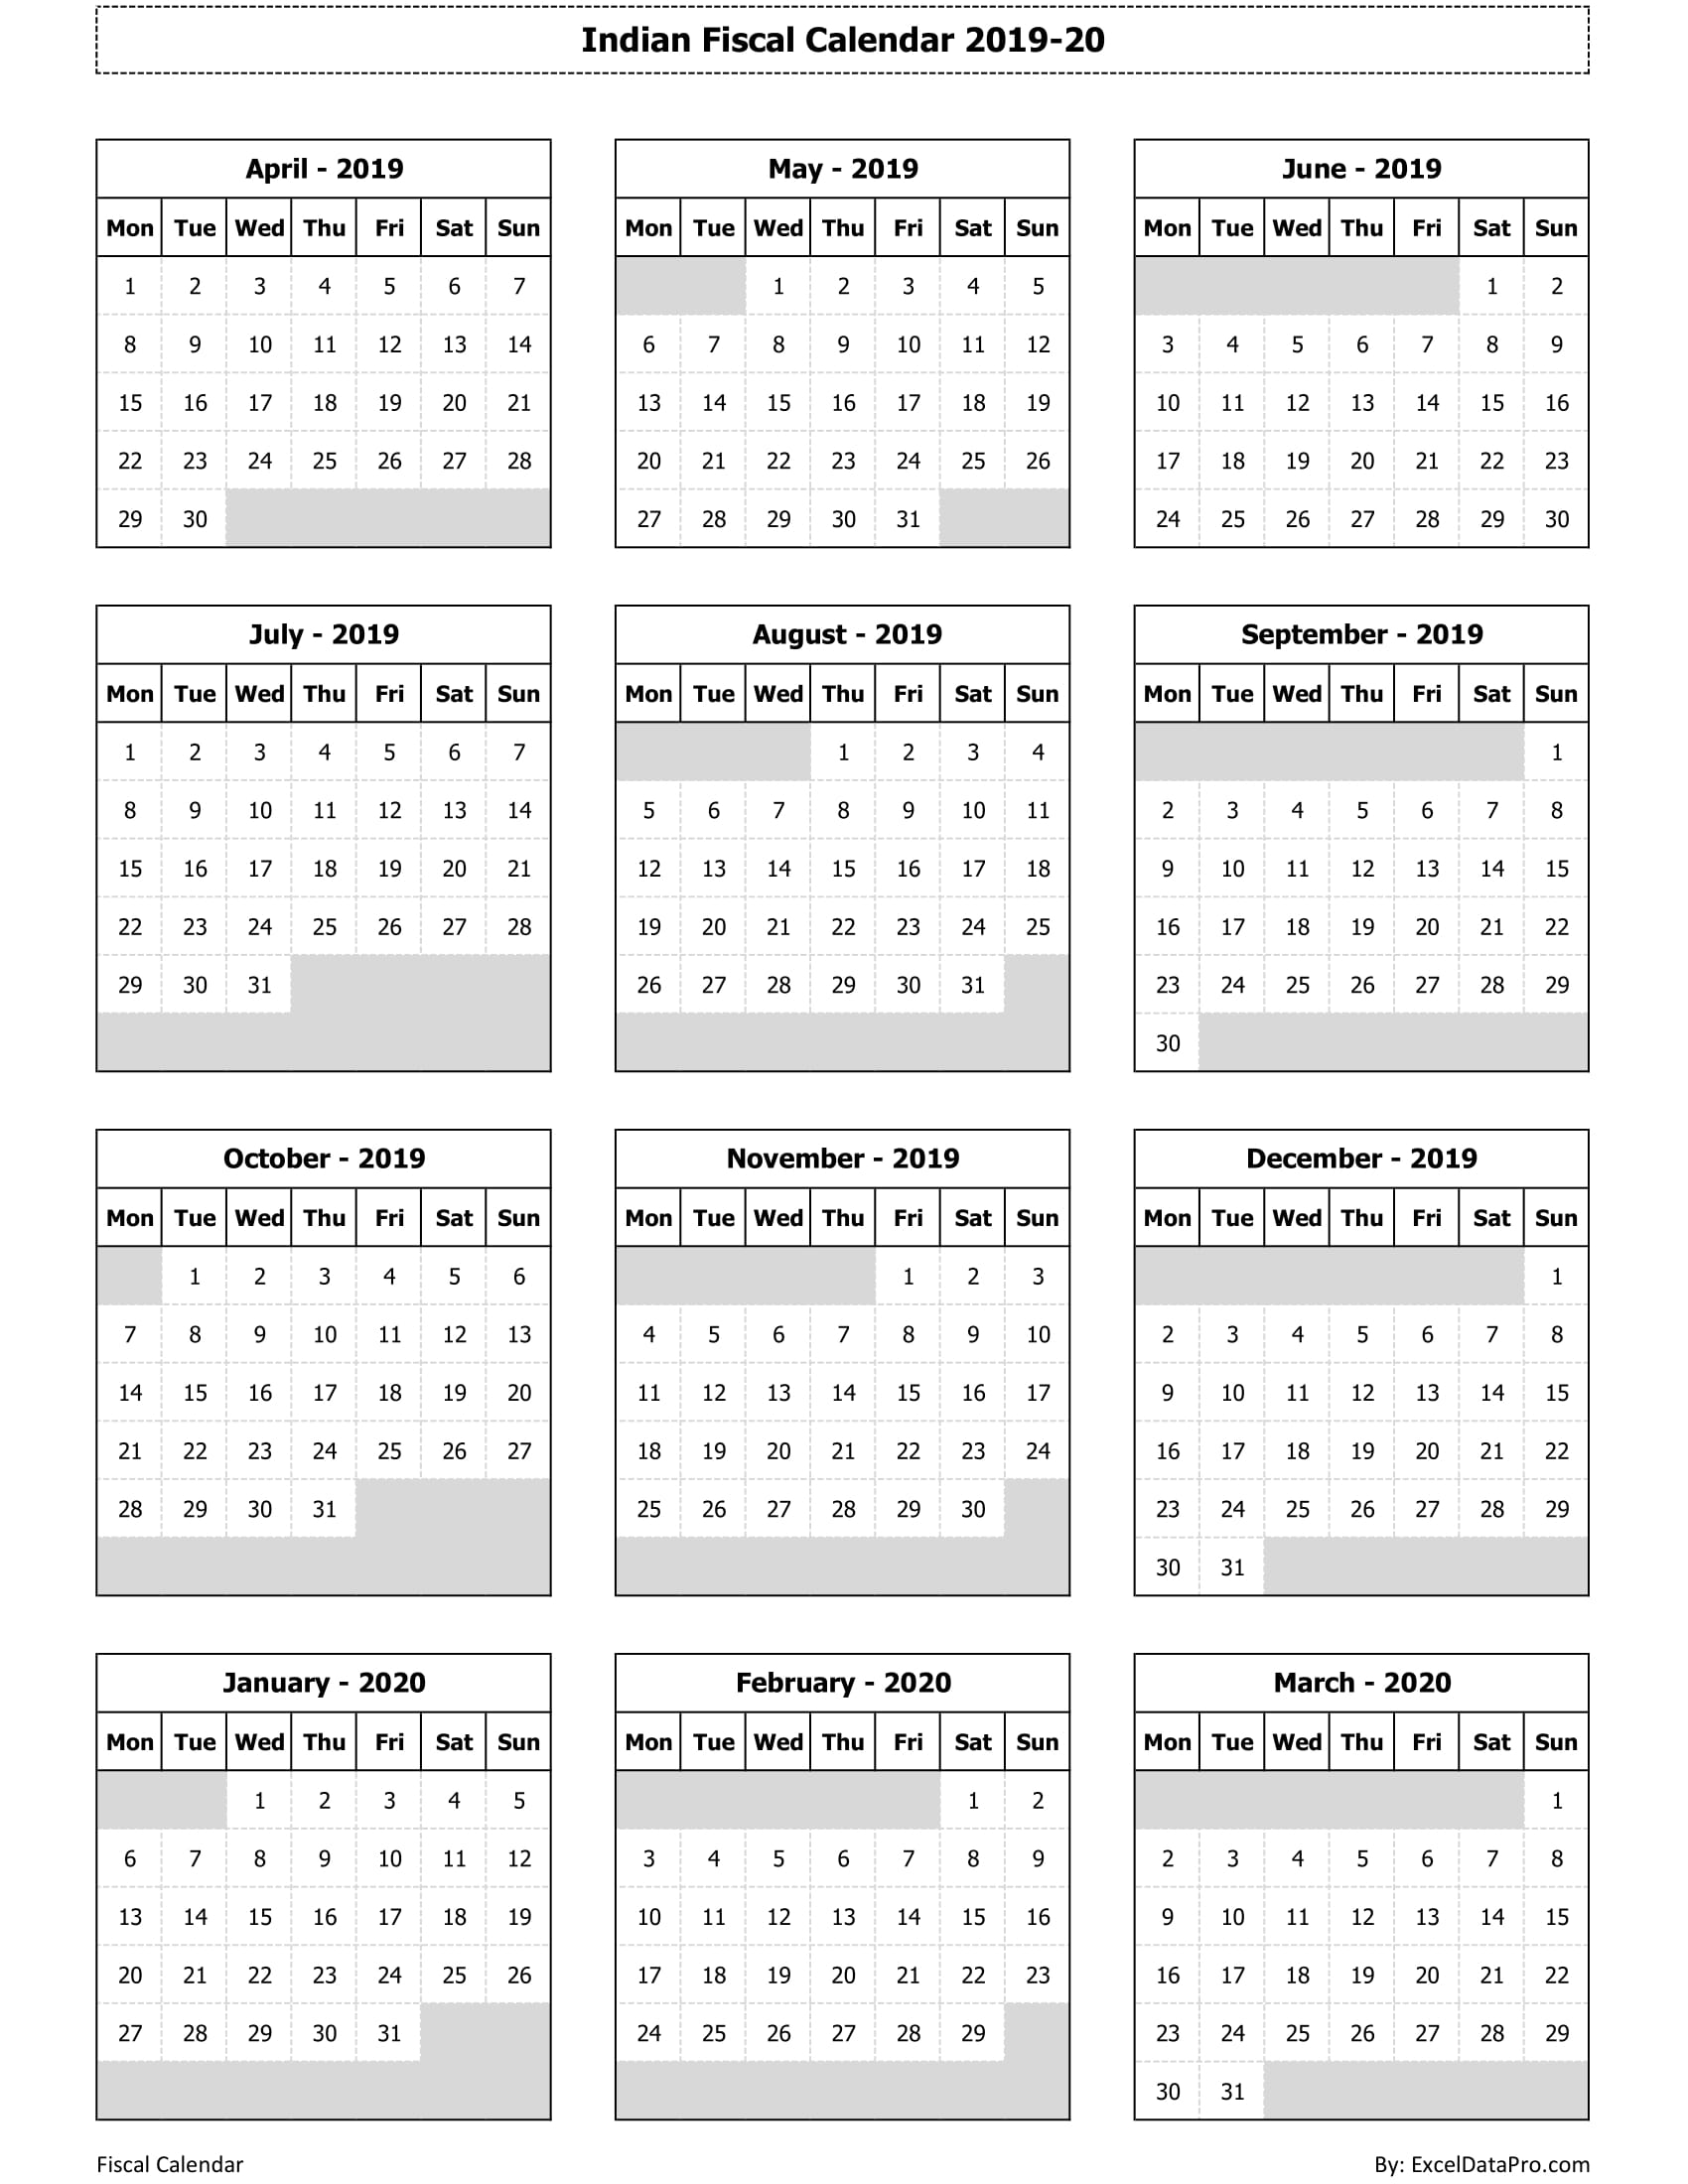 2019 Fiscal Calendar Download Indian Fiscal Calendar 2019 20 Excel Template   ExcelDataPro